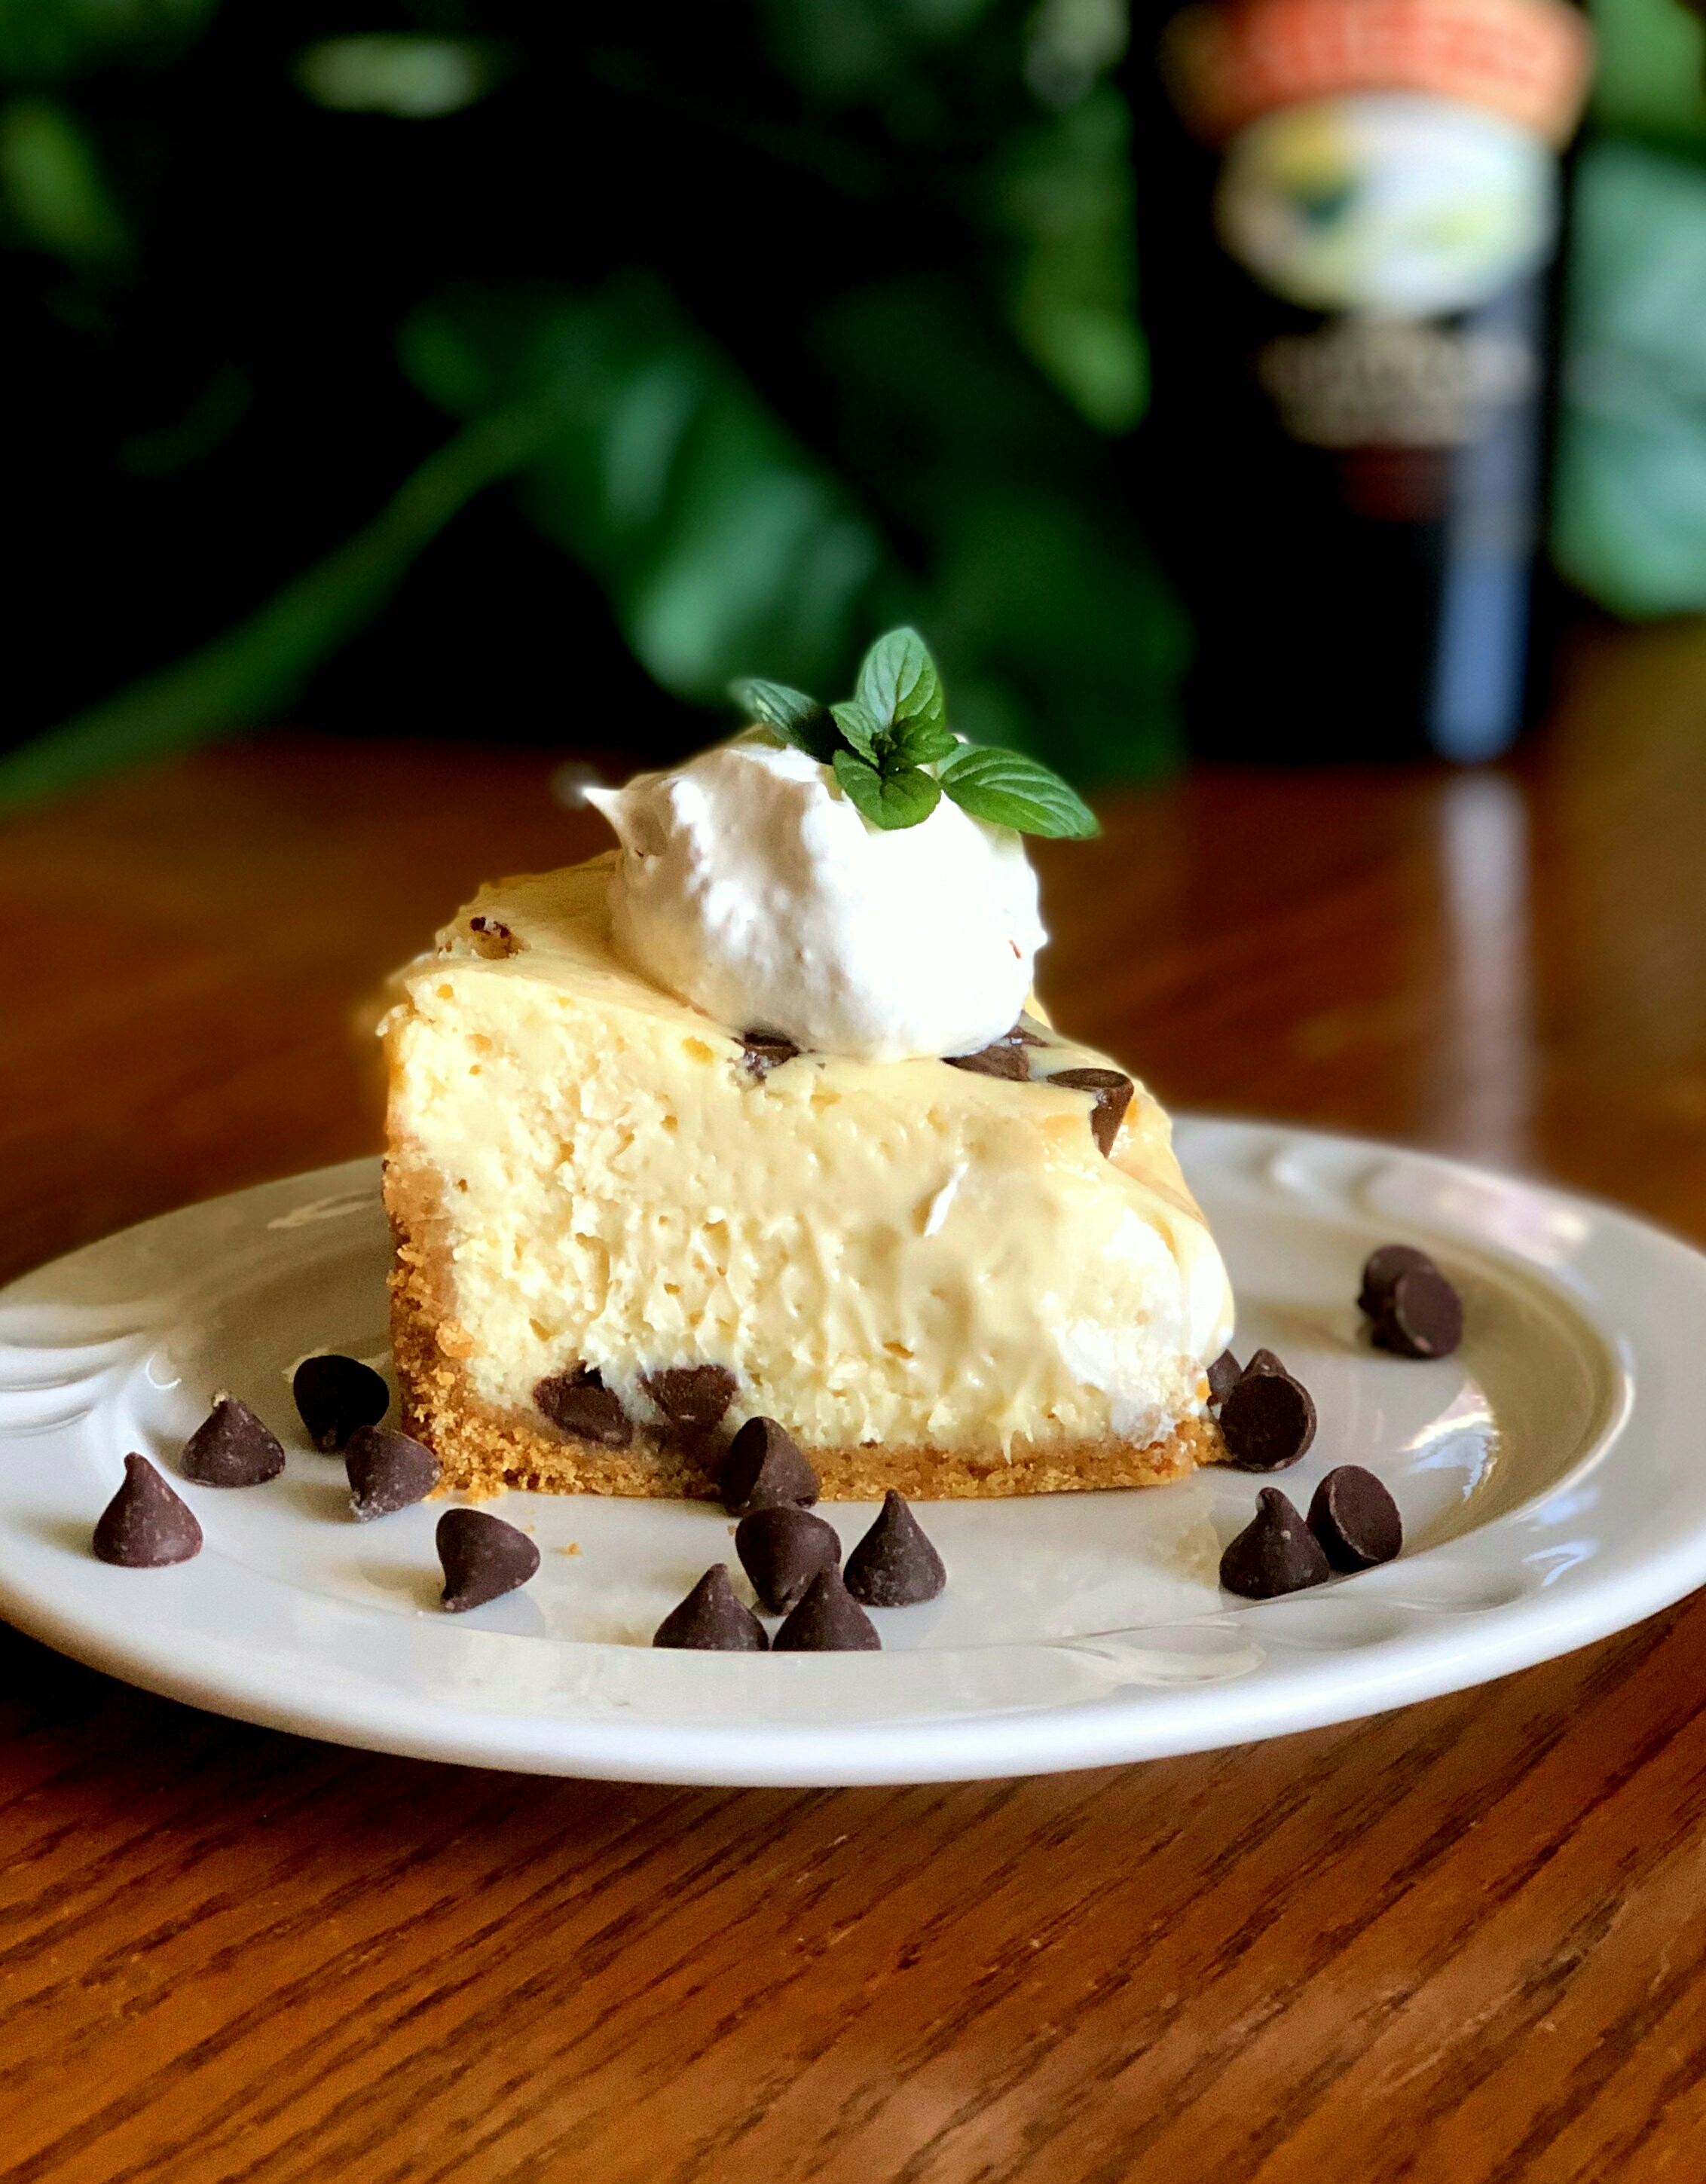 Recipe submitter TACZYZ received this recipe from a caterer more than 20 years ago, and warns that it's not for the diet-conscious. Made with a whole cup of Irish cream, this cheesecake is definitely for Baileys-lovers only.